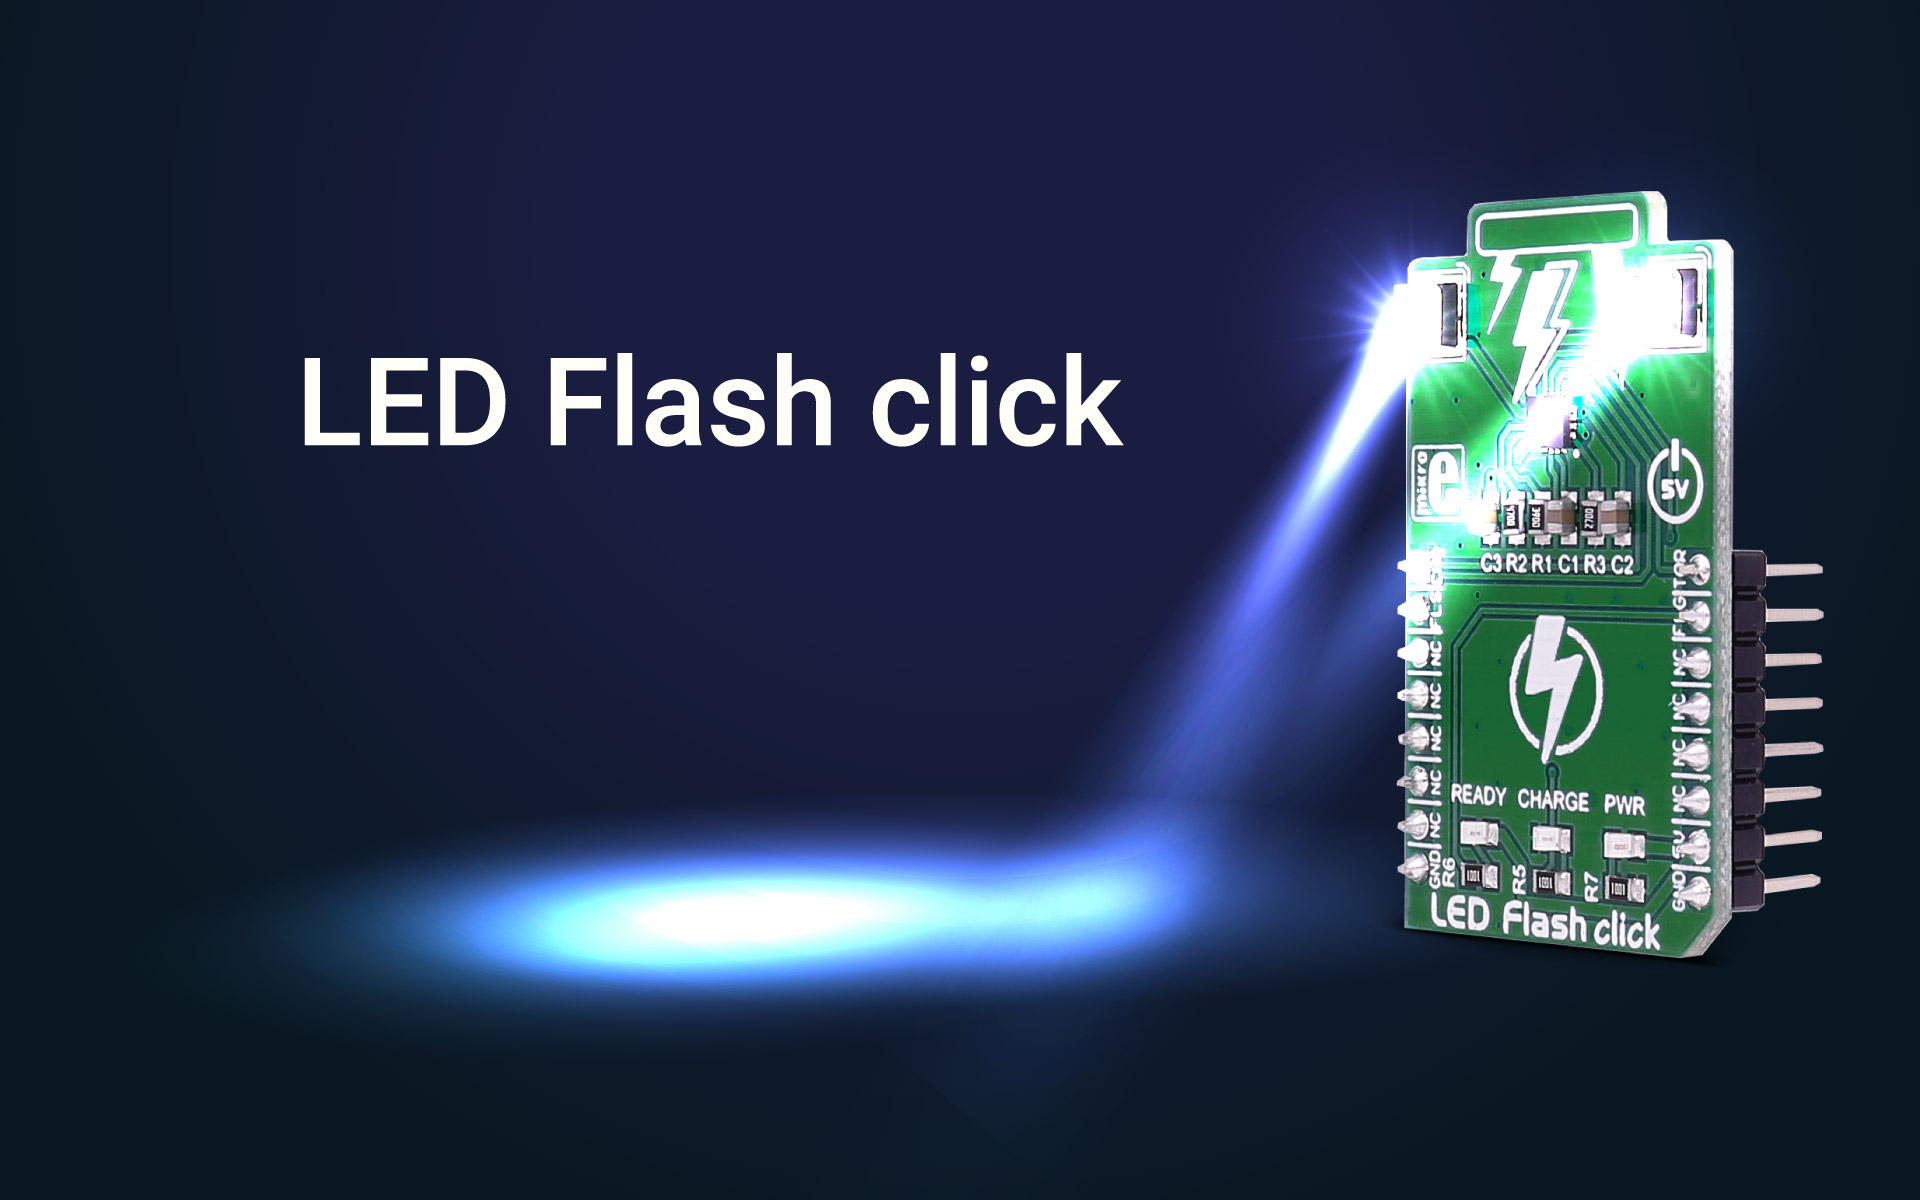 LED Flash click – a high-power LED flash in compact size